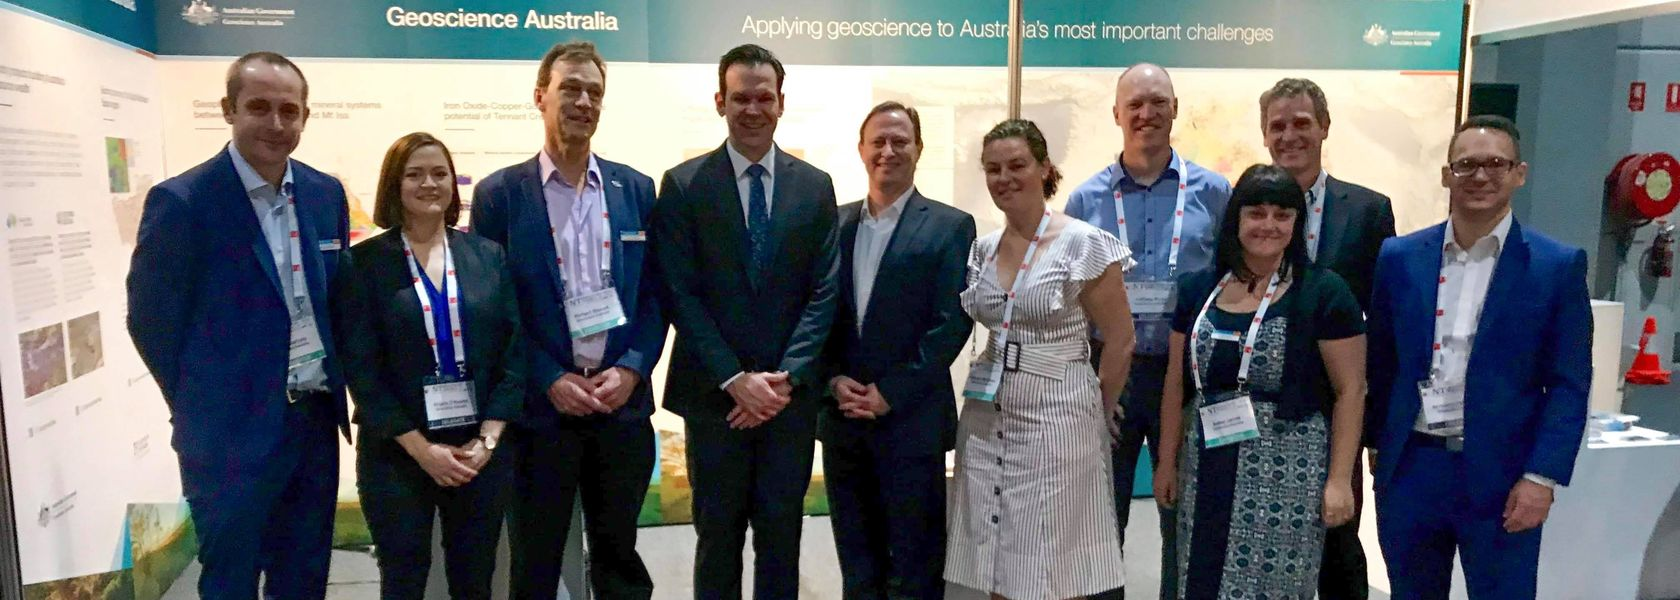 Darwin to become a manufacturing hub thanks to Beetaloo: Canavan